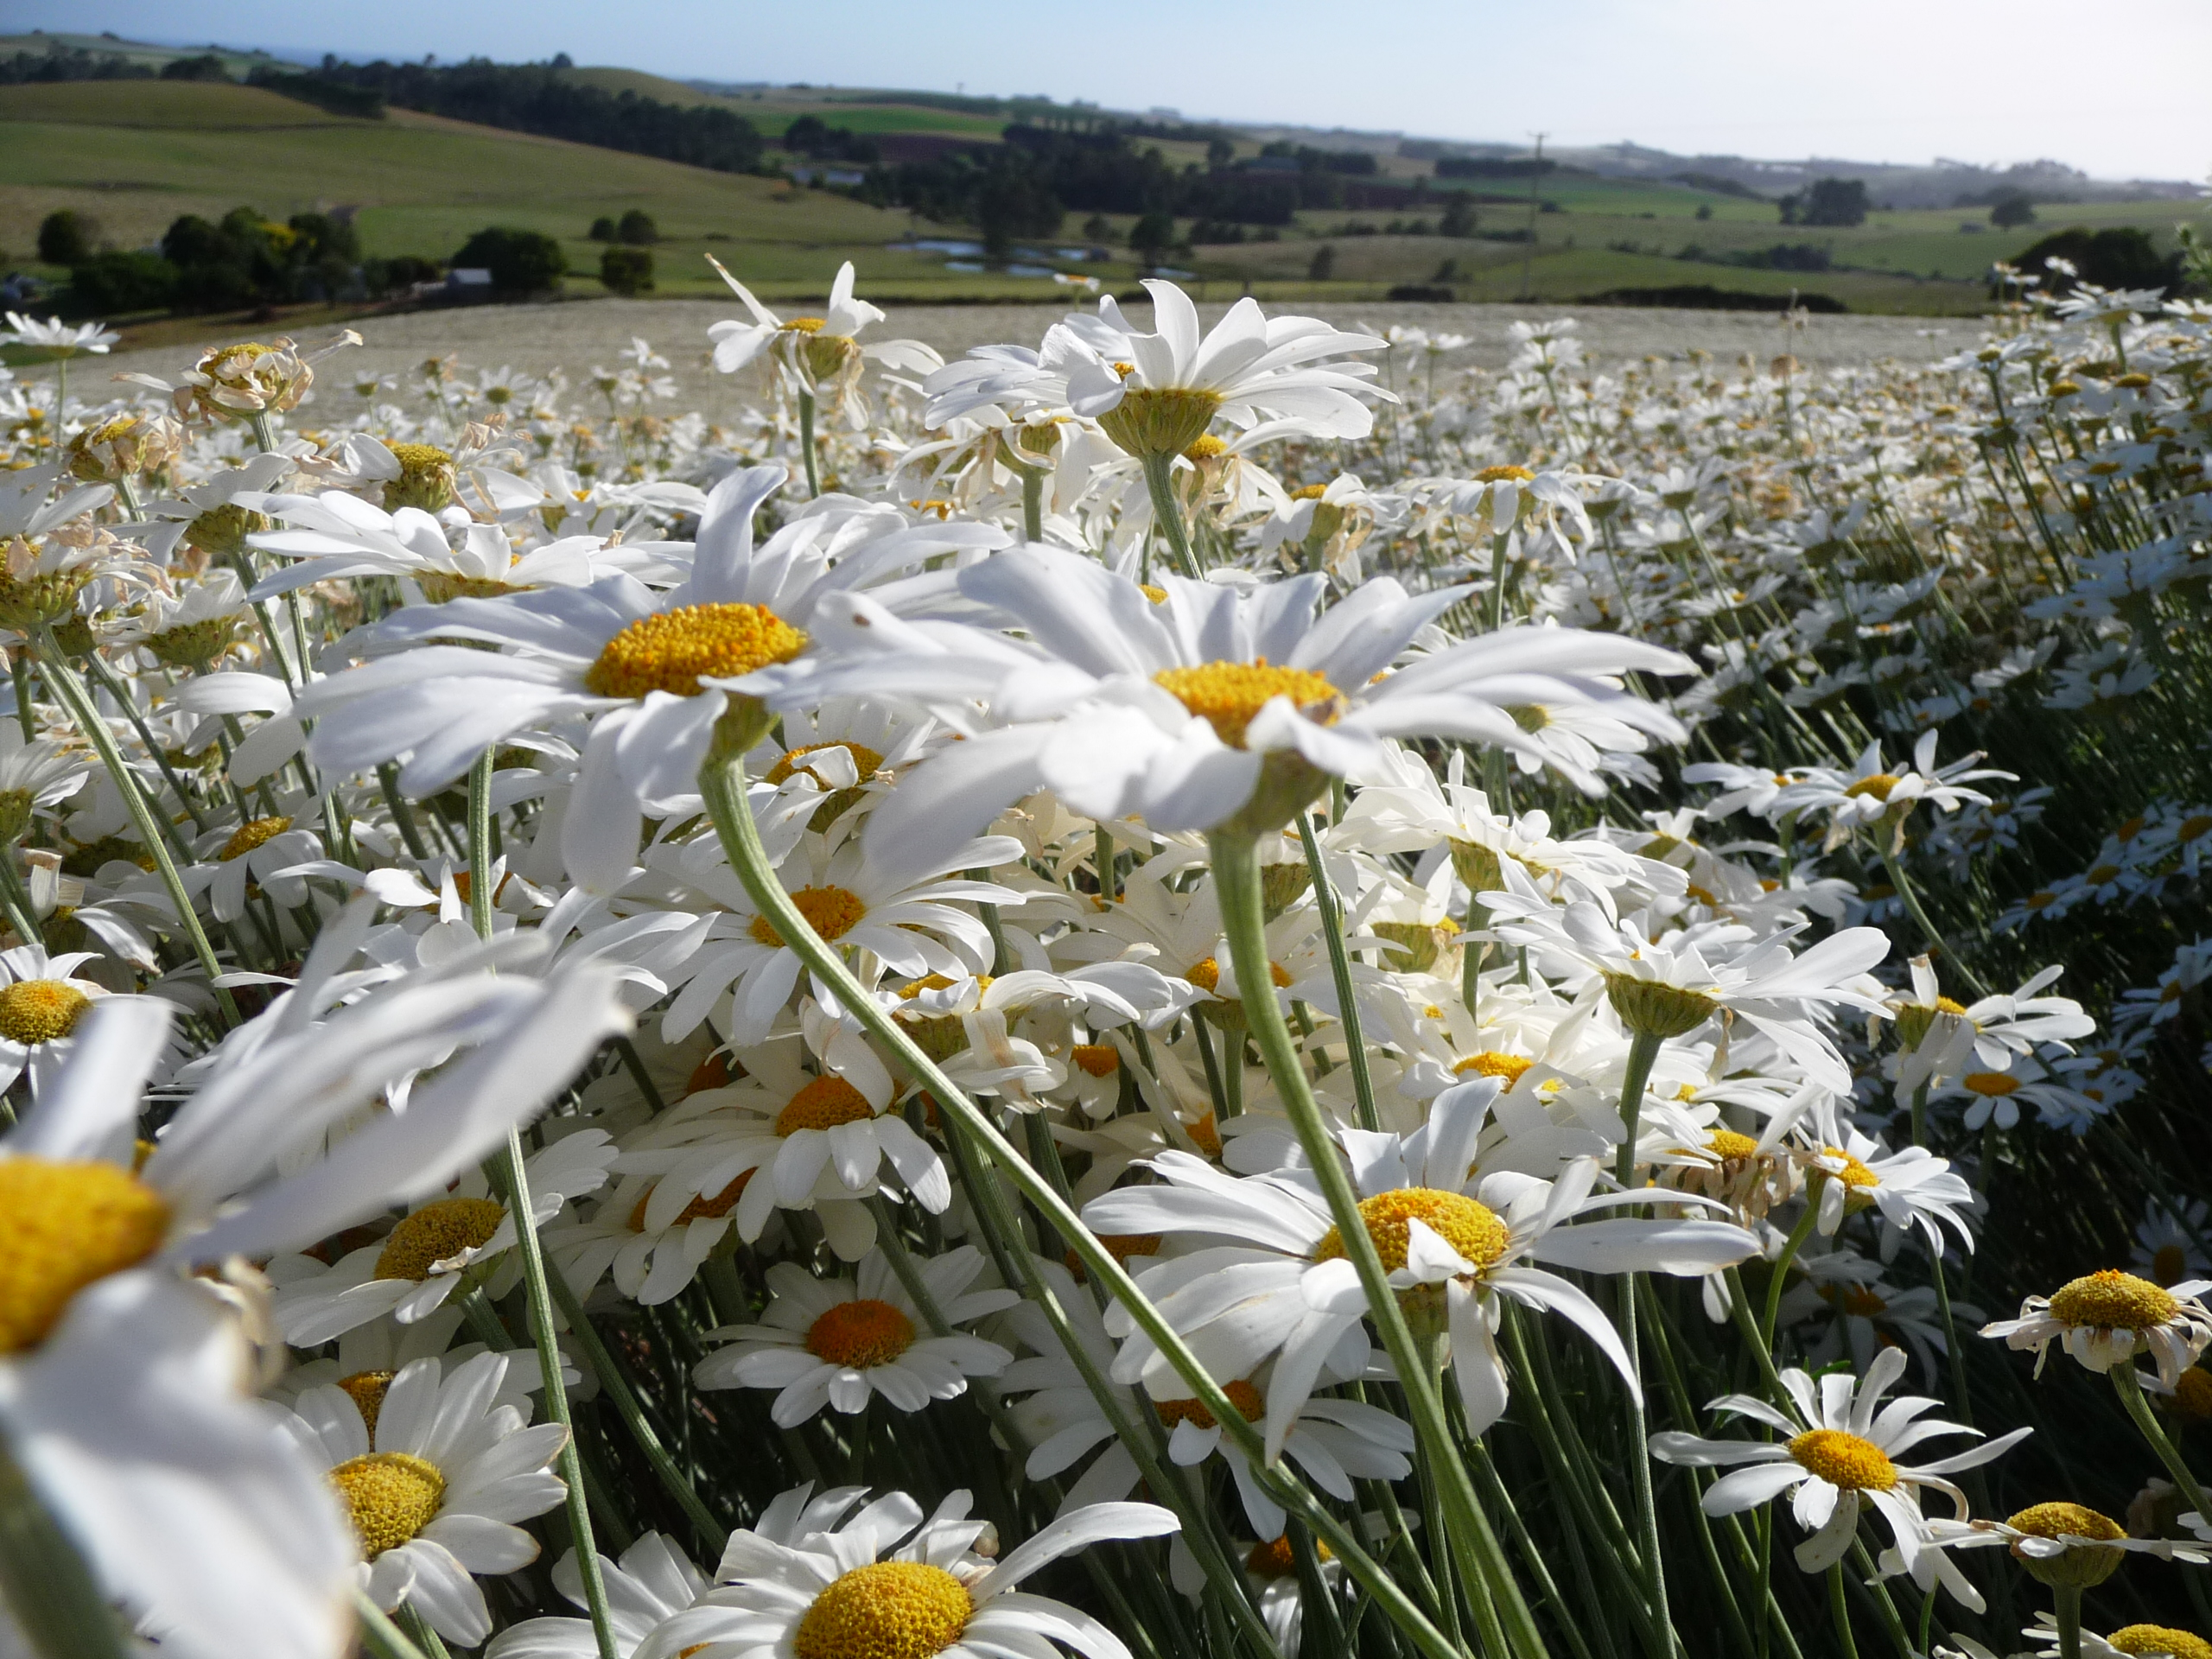 Image of a field of pyrethrum daisy plants in flower.